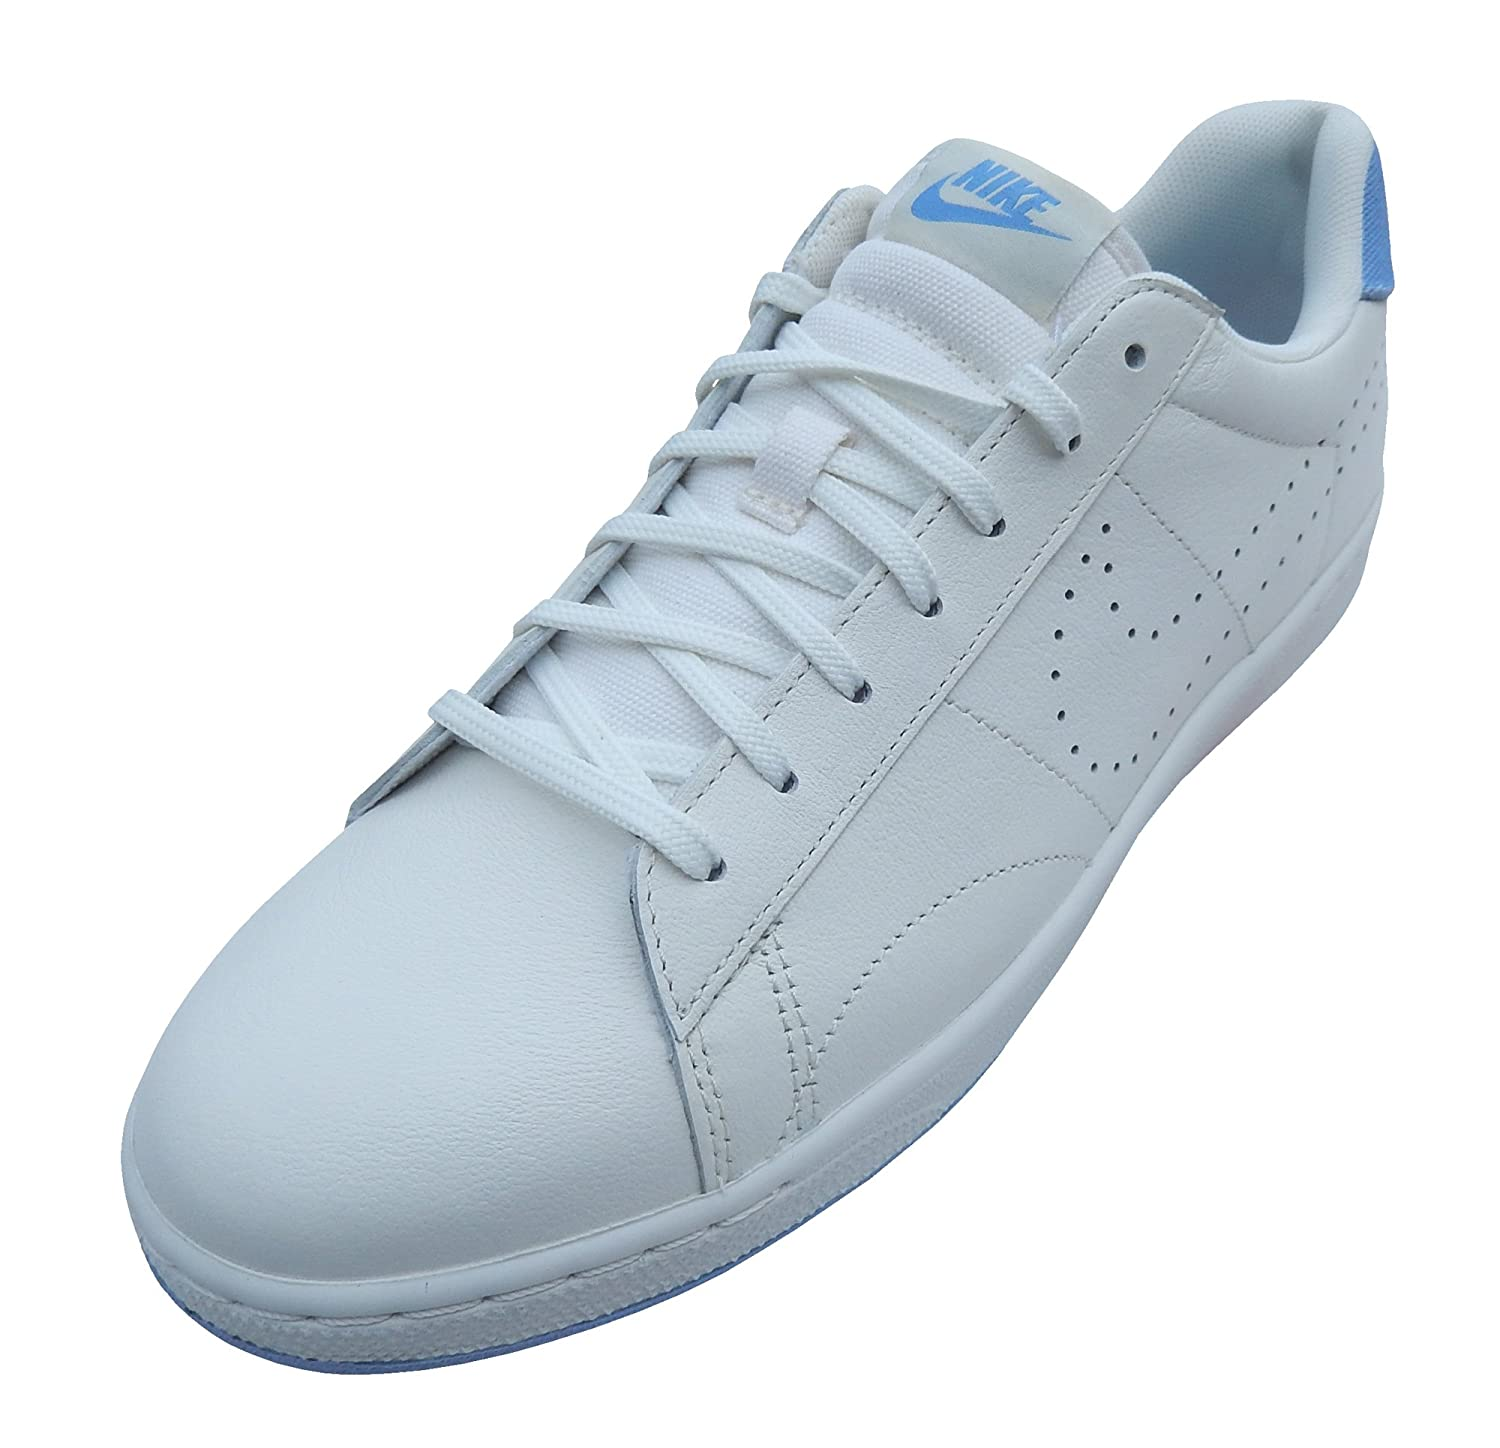 nouveaux styles 71db9 823cb Nike Tennis Classic Ultra Leather White